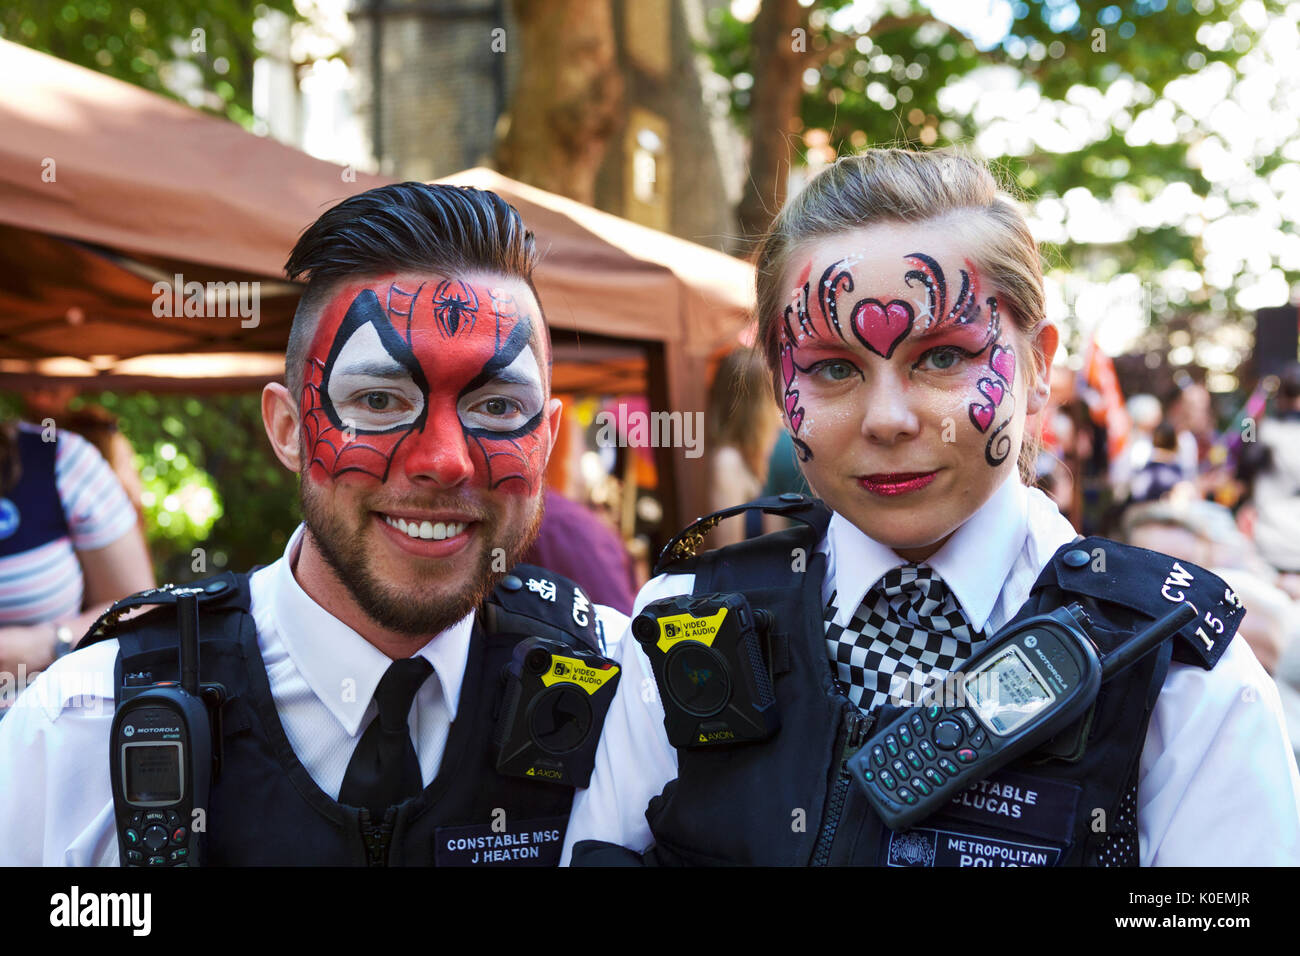 London community police officers with painted faces, at the annual Soho fete, UK. - Stock Image